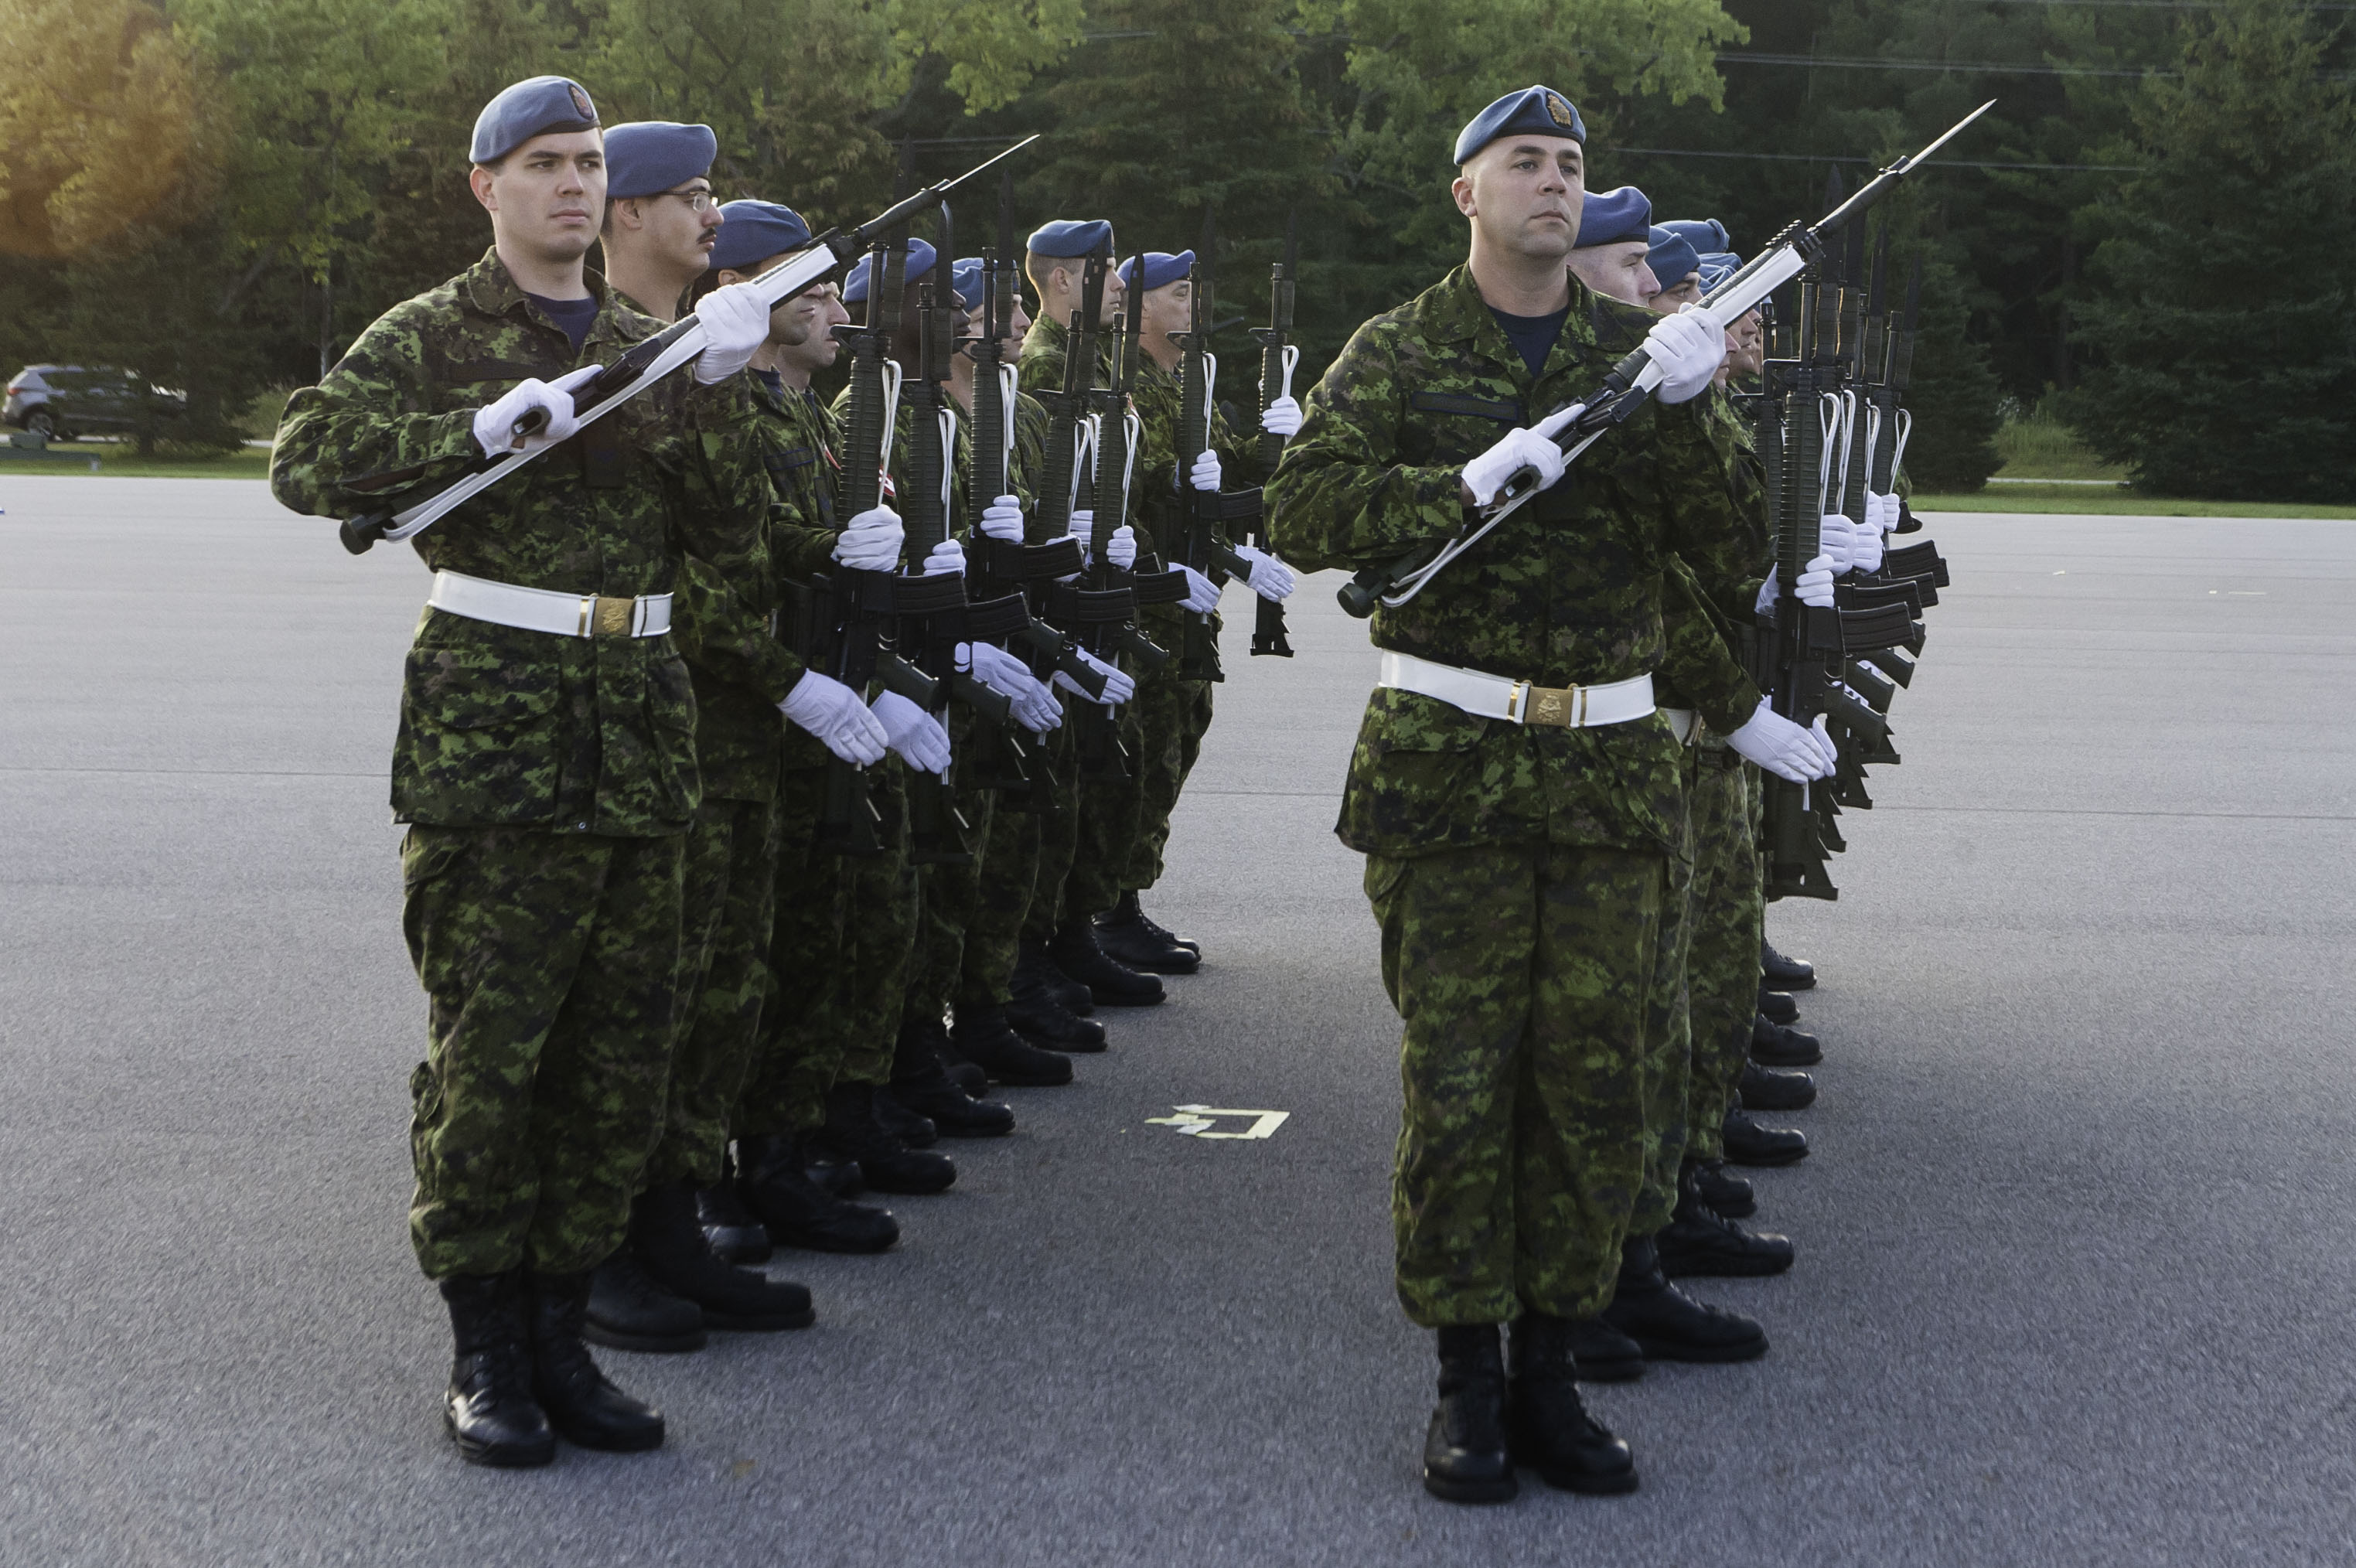 A group of military personnel wearing white gloves and carrying rifles.